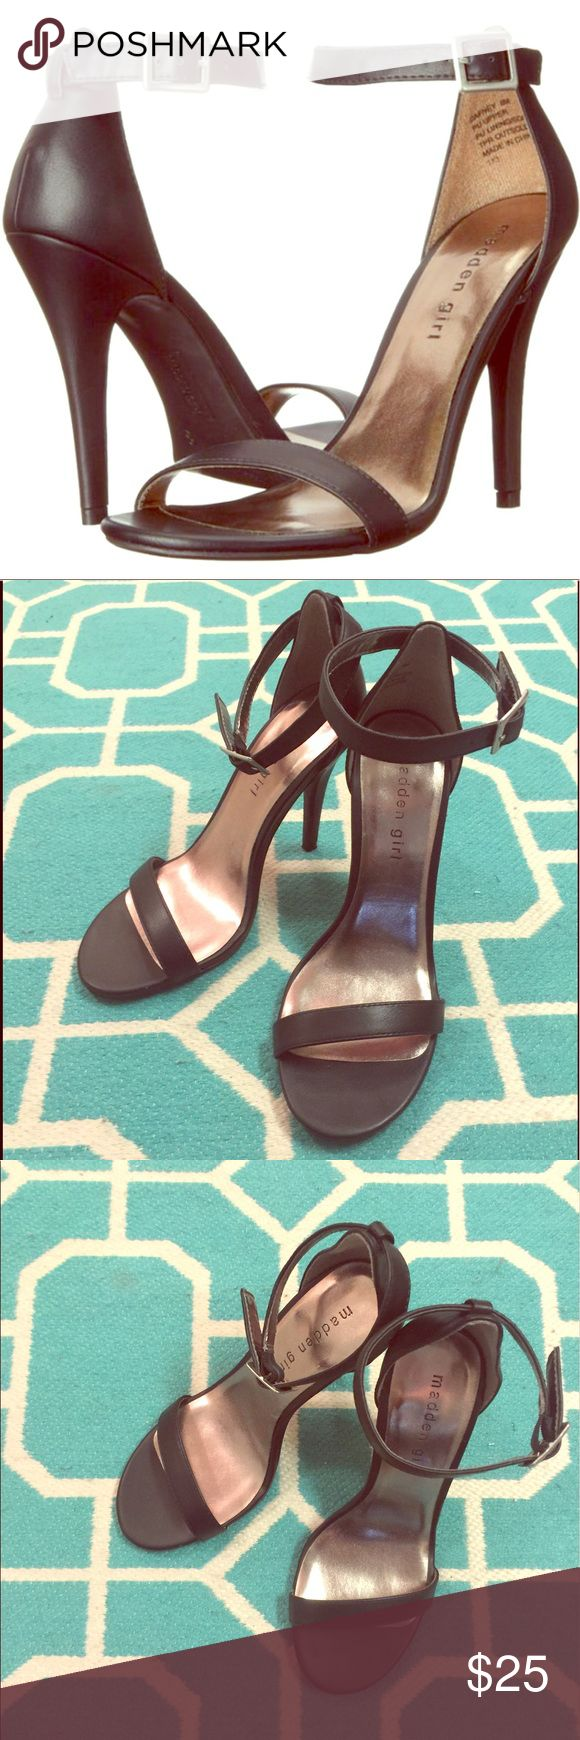 """Madden Girl 'Dafney' Ankle Strap Heels Cute black adjustable ankle strap closure heels. Lightly cushioned footbed, open round toe, and non-skid sole. Heel height is approx. 4.25"""". Excellent condition. No box. Bundle for a discount! Madden Girl Shoes Heels"""